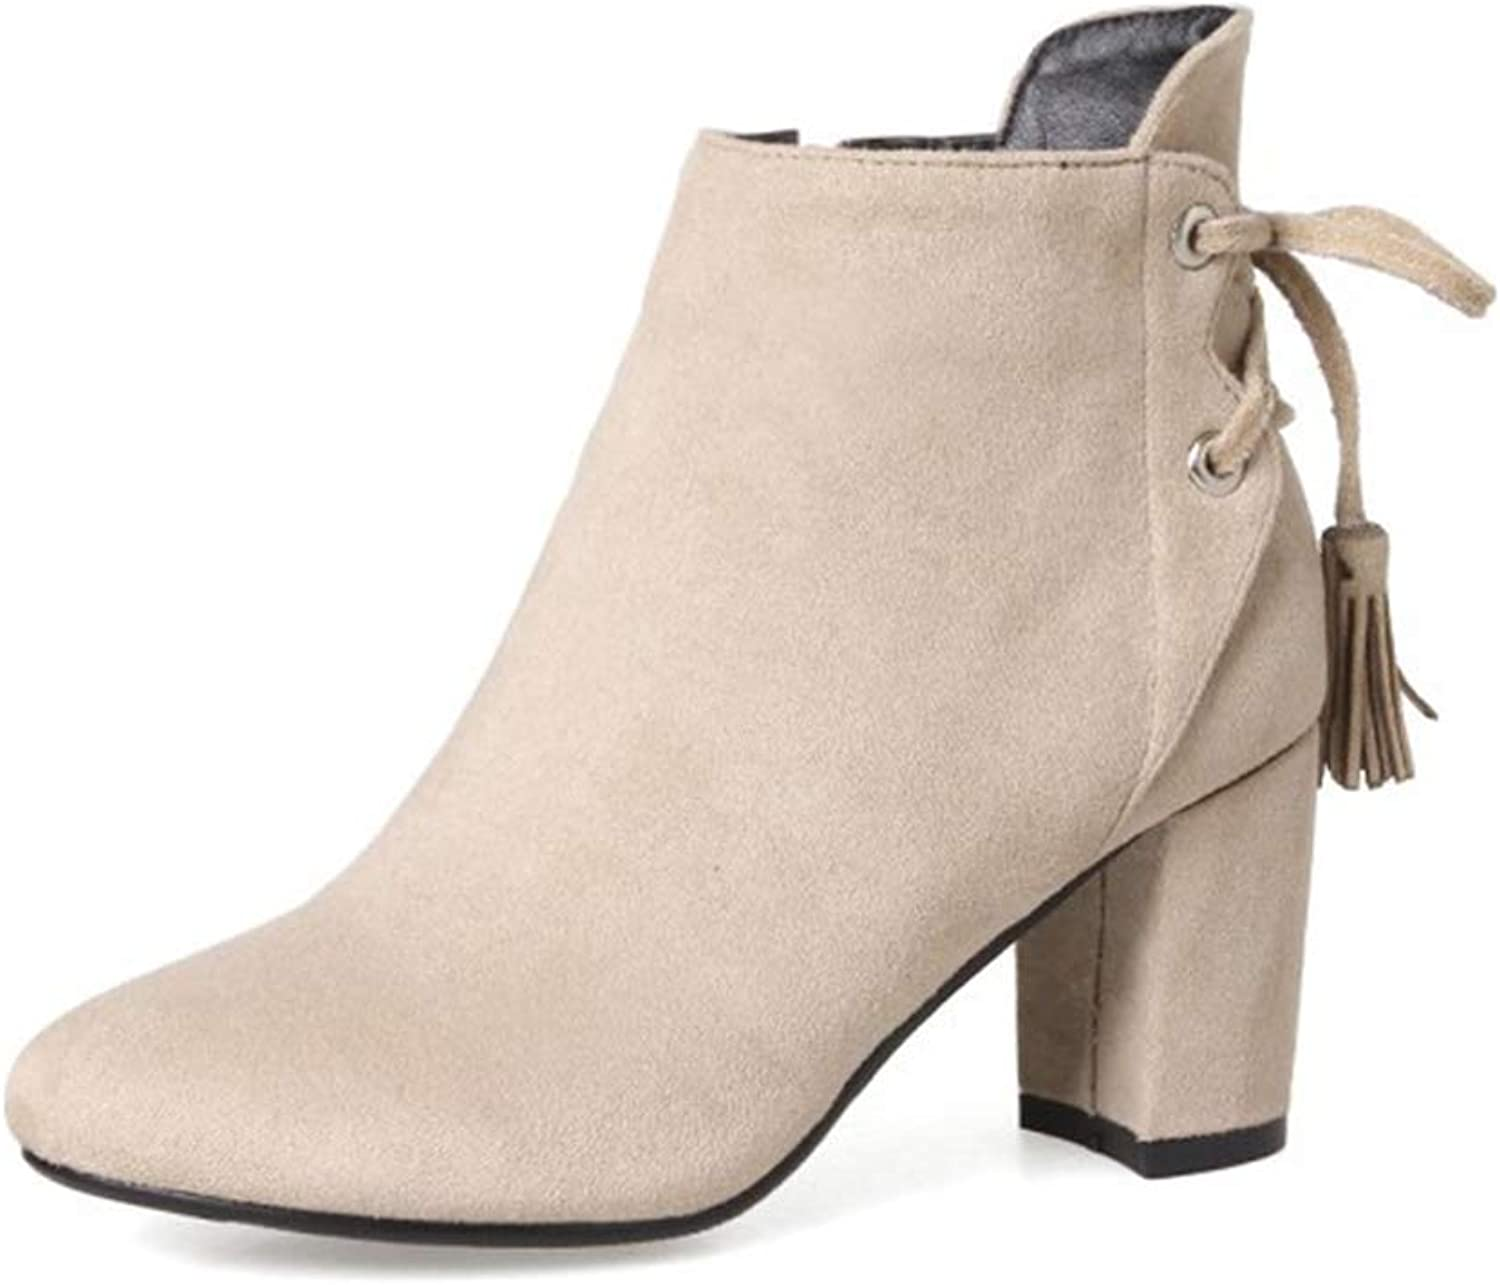 Ladies Booties,Suede Pointed Side Zipper Tassel Boots Women's Rear Lace-up High Heel Thick Heel Fashion Boots (color   A, Size   38)